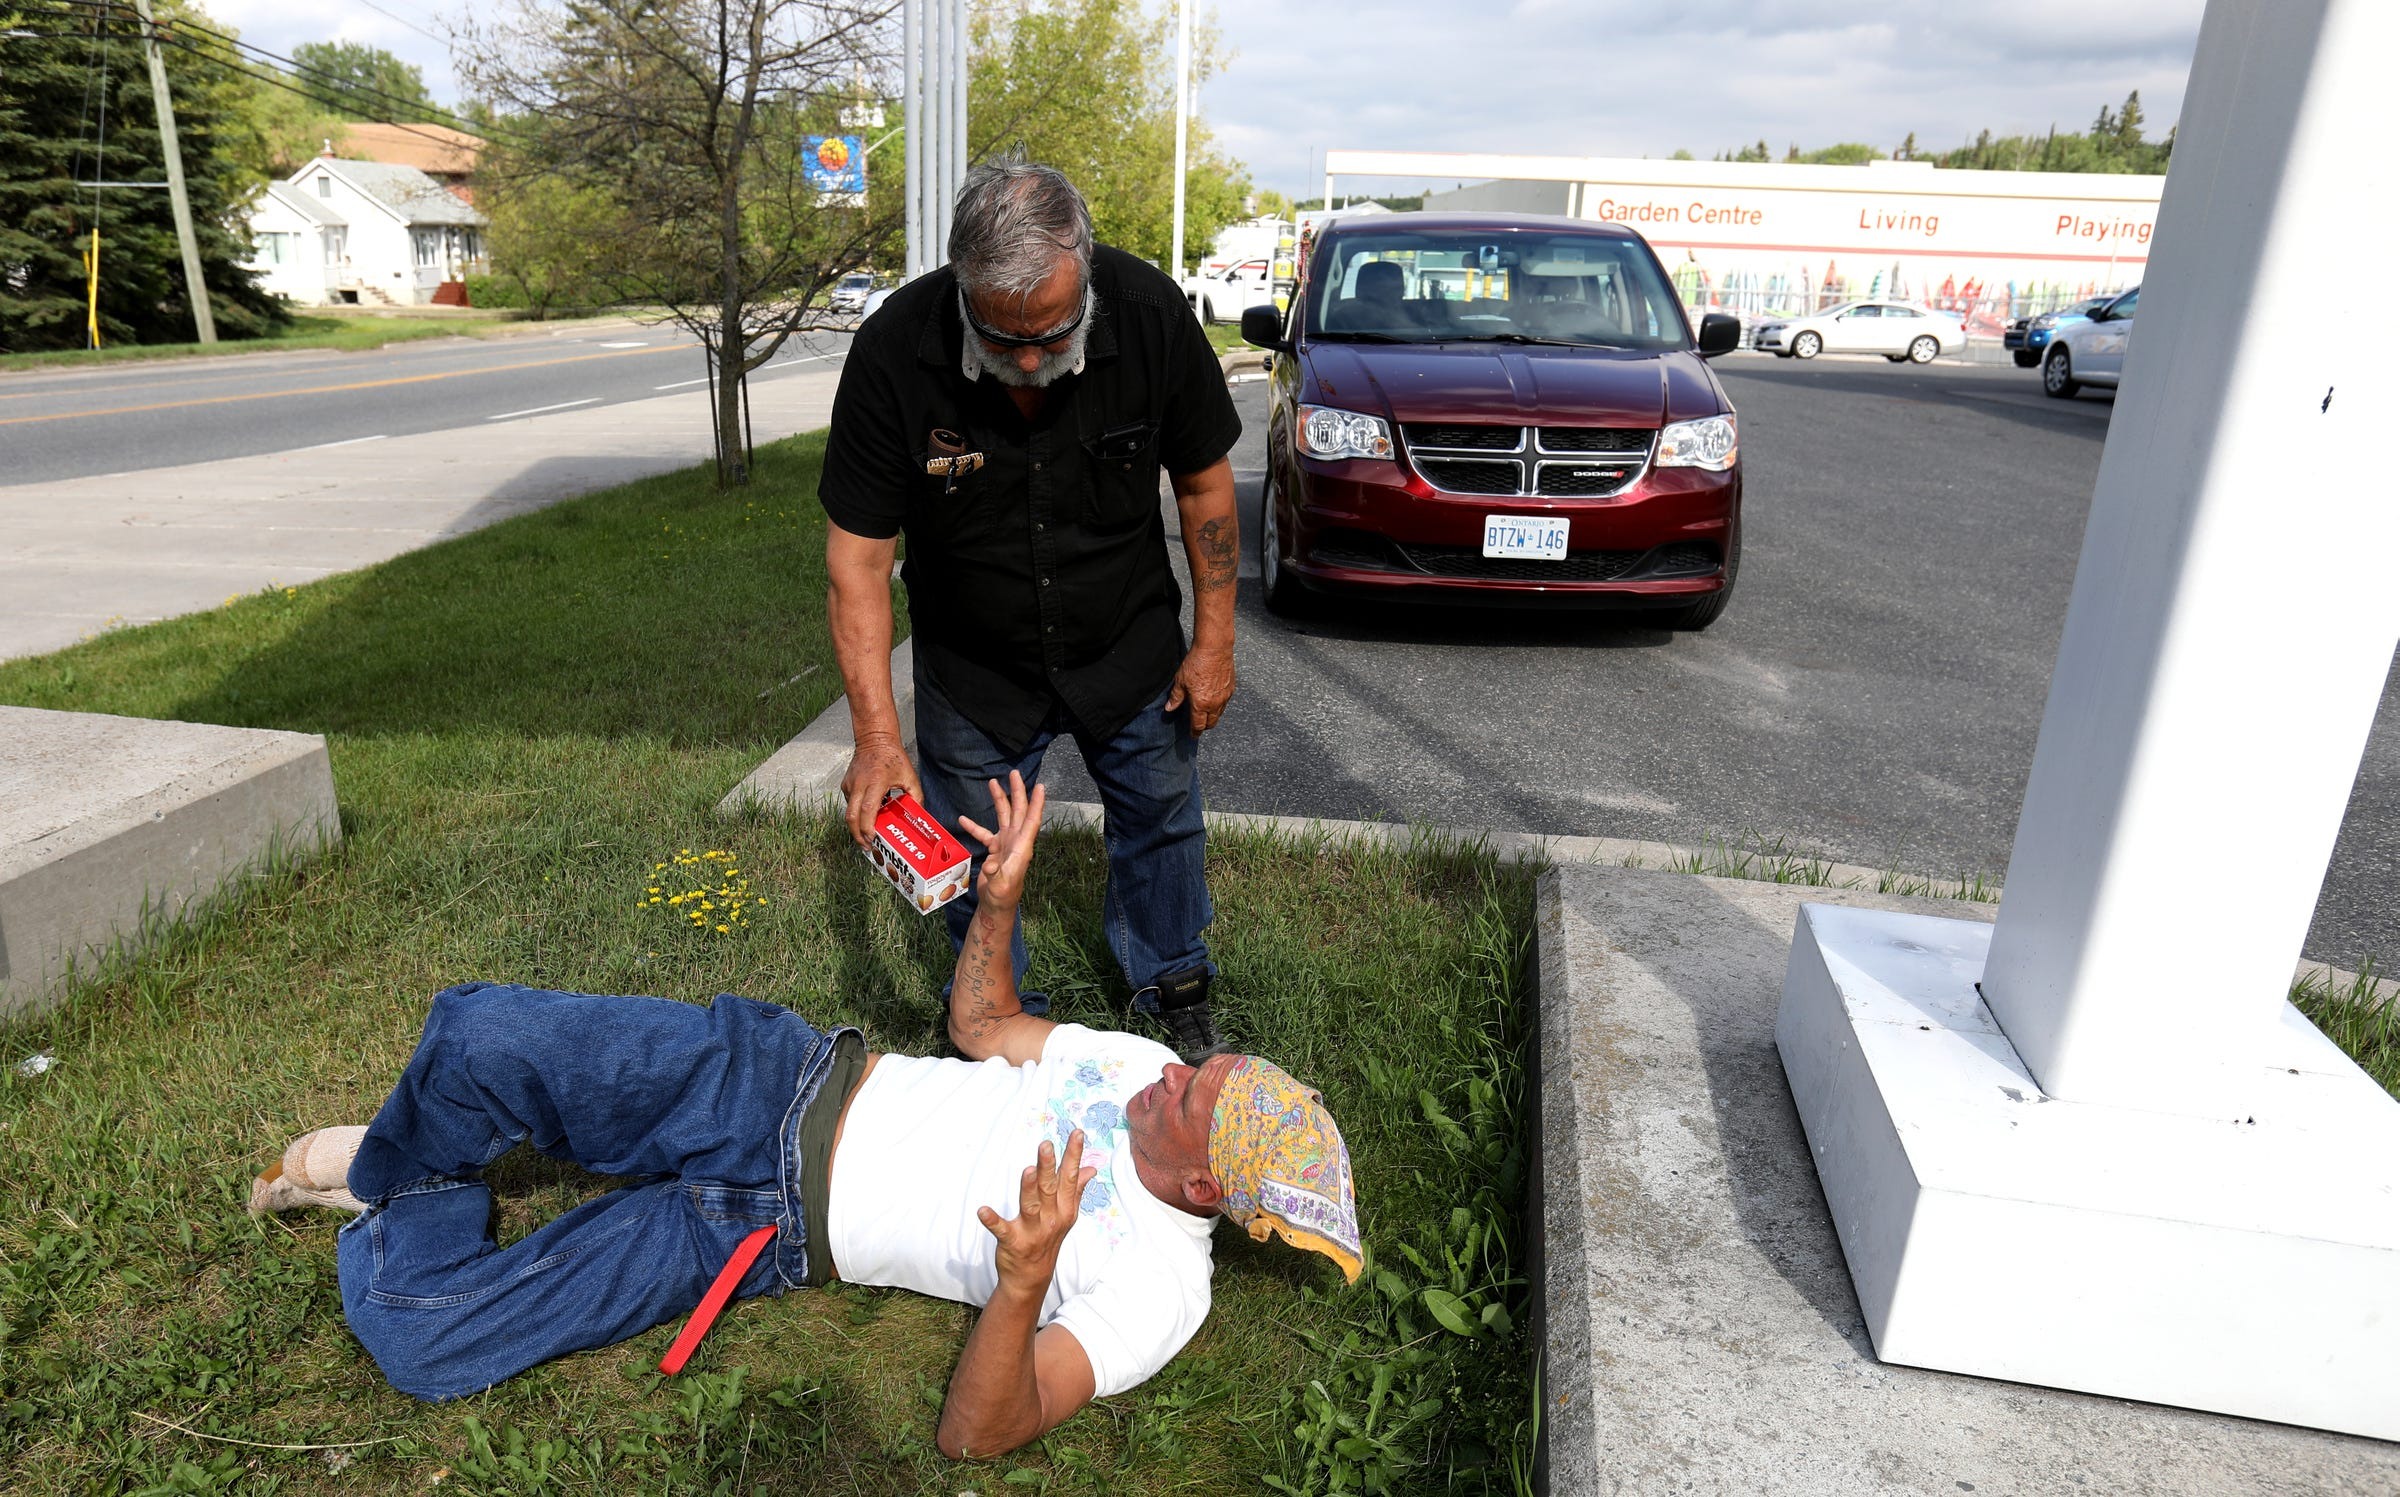 Joe Murphy often returns to sleep underneath the Canadian Tire gas station sign where many residents of Kenora, Ontario, are used to seeing him. Often, people stop by, bringing him food from McDonalds and Tim Hortons like this man did for him on Wednesday, July 10, 2019. After living in a hotel in Kenora, Ontario, Canada set up by former NHL hockey players, former Detroit Red Wings player Joe Murphy is back on the streets of that city and homeless.